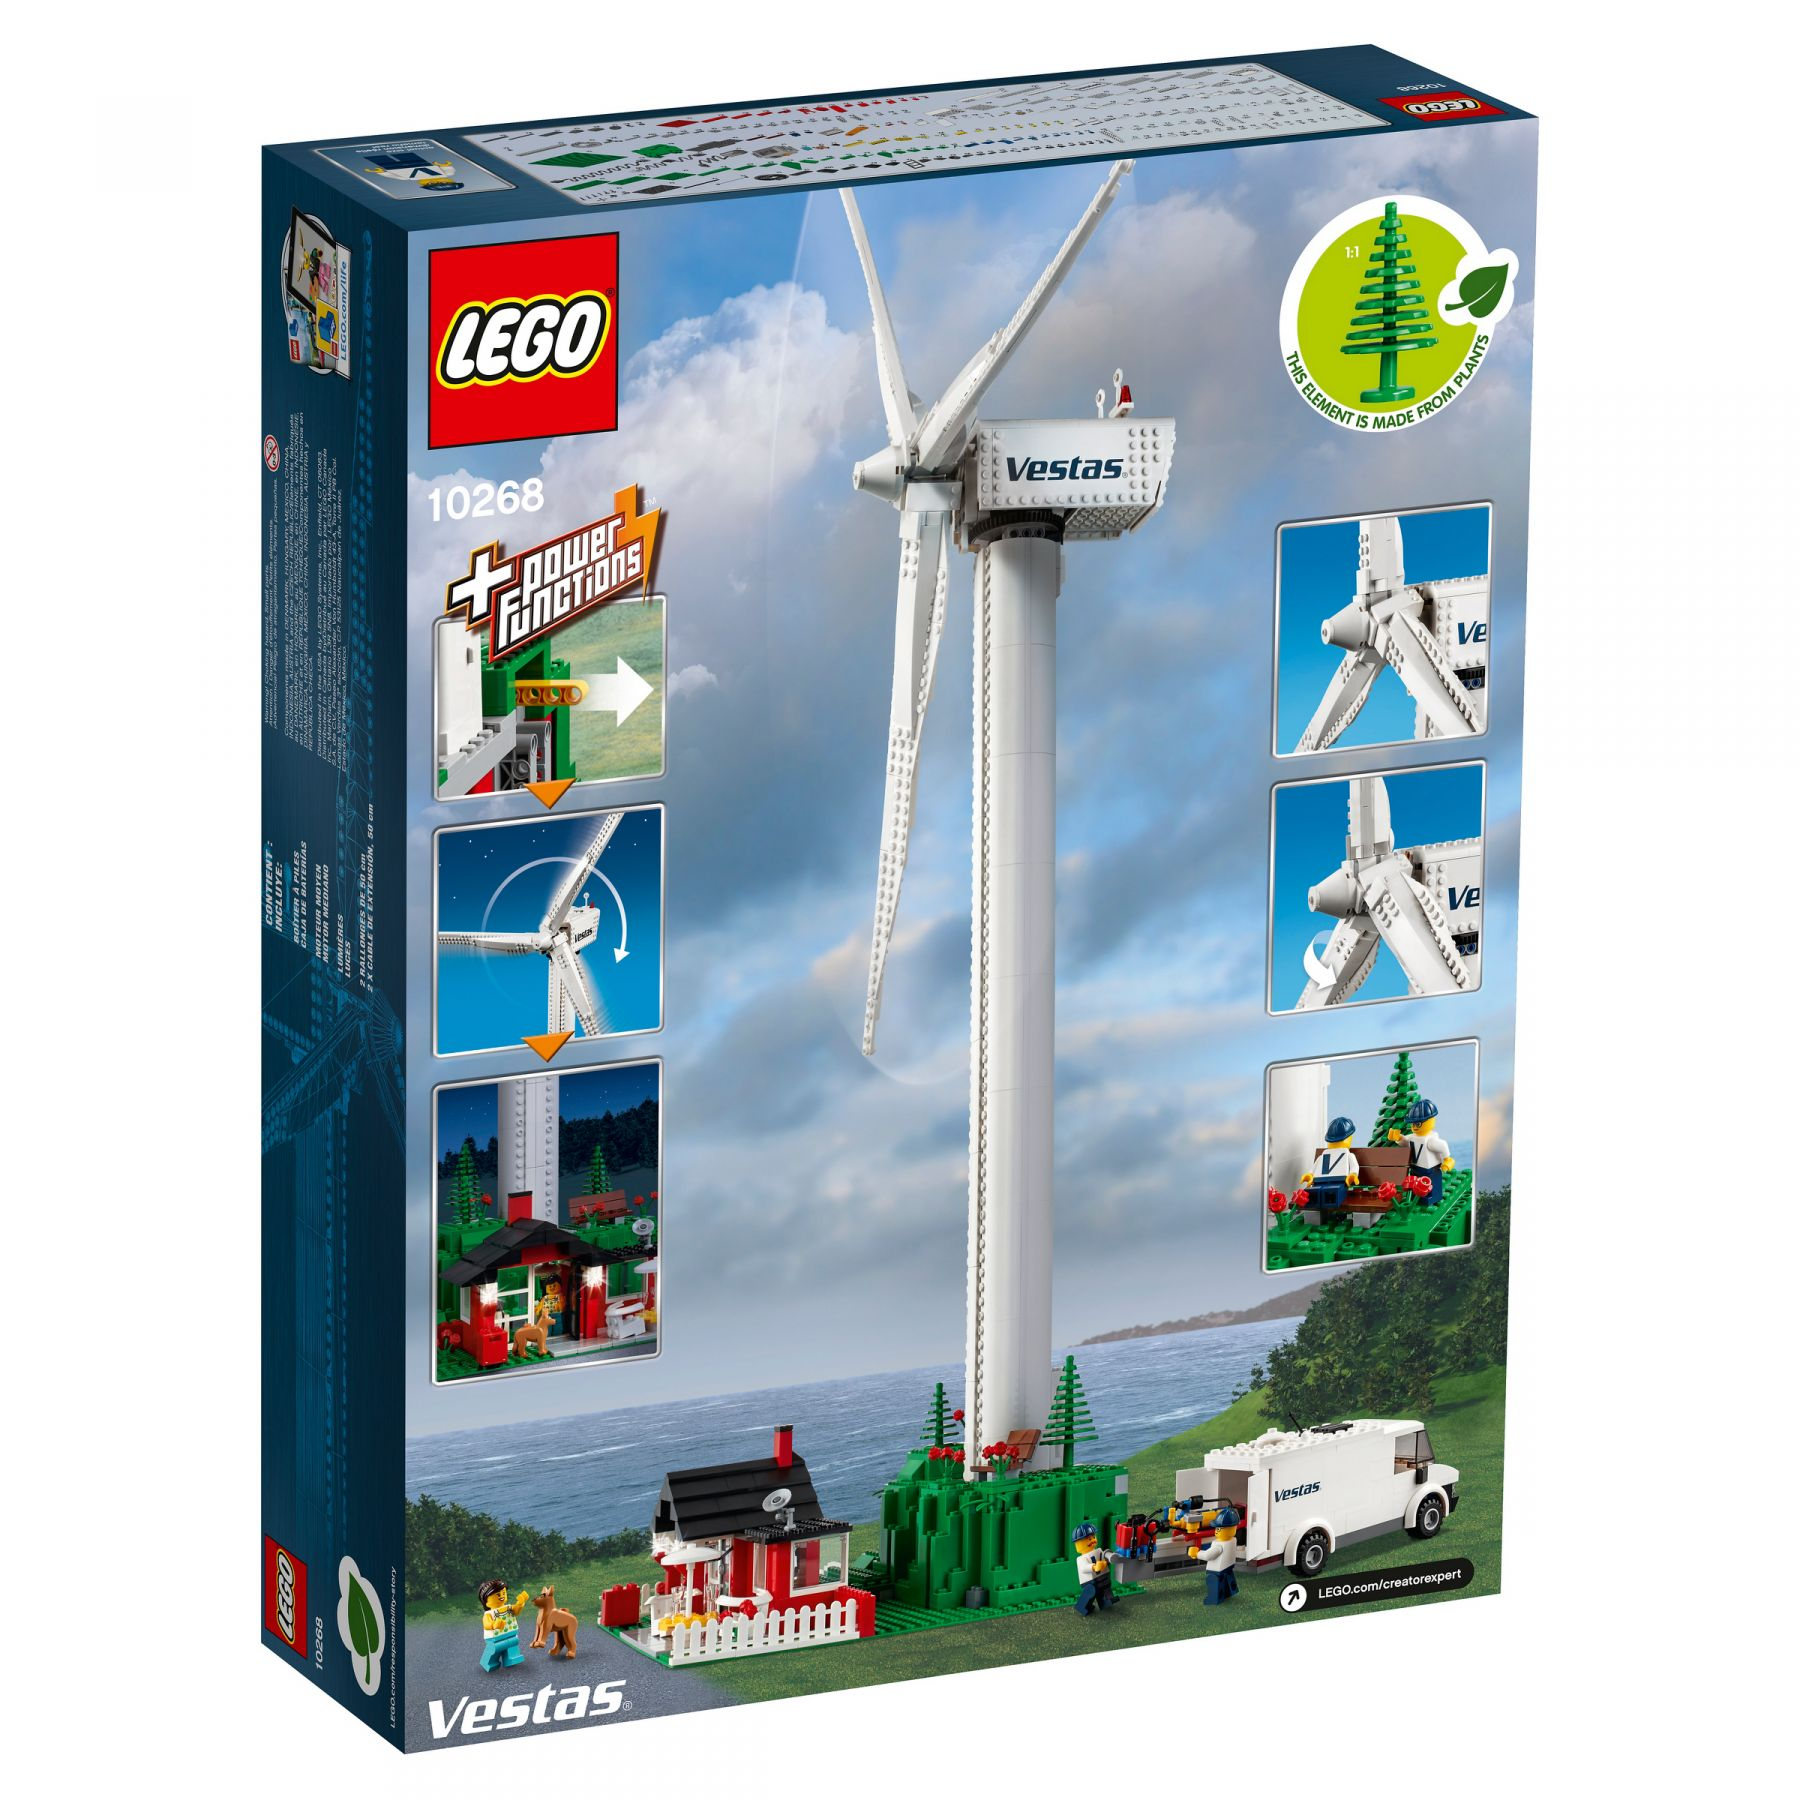 LEGO Advanced Models 10268 Vestas® Windkraftanlage LEGO_10268_alt11.jpg